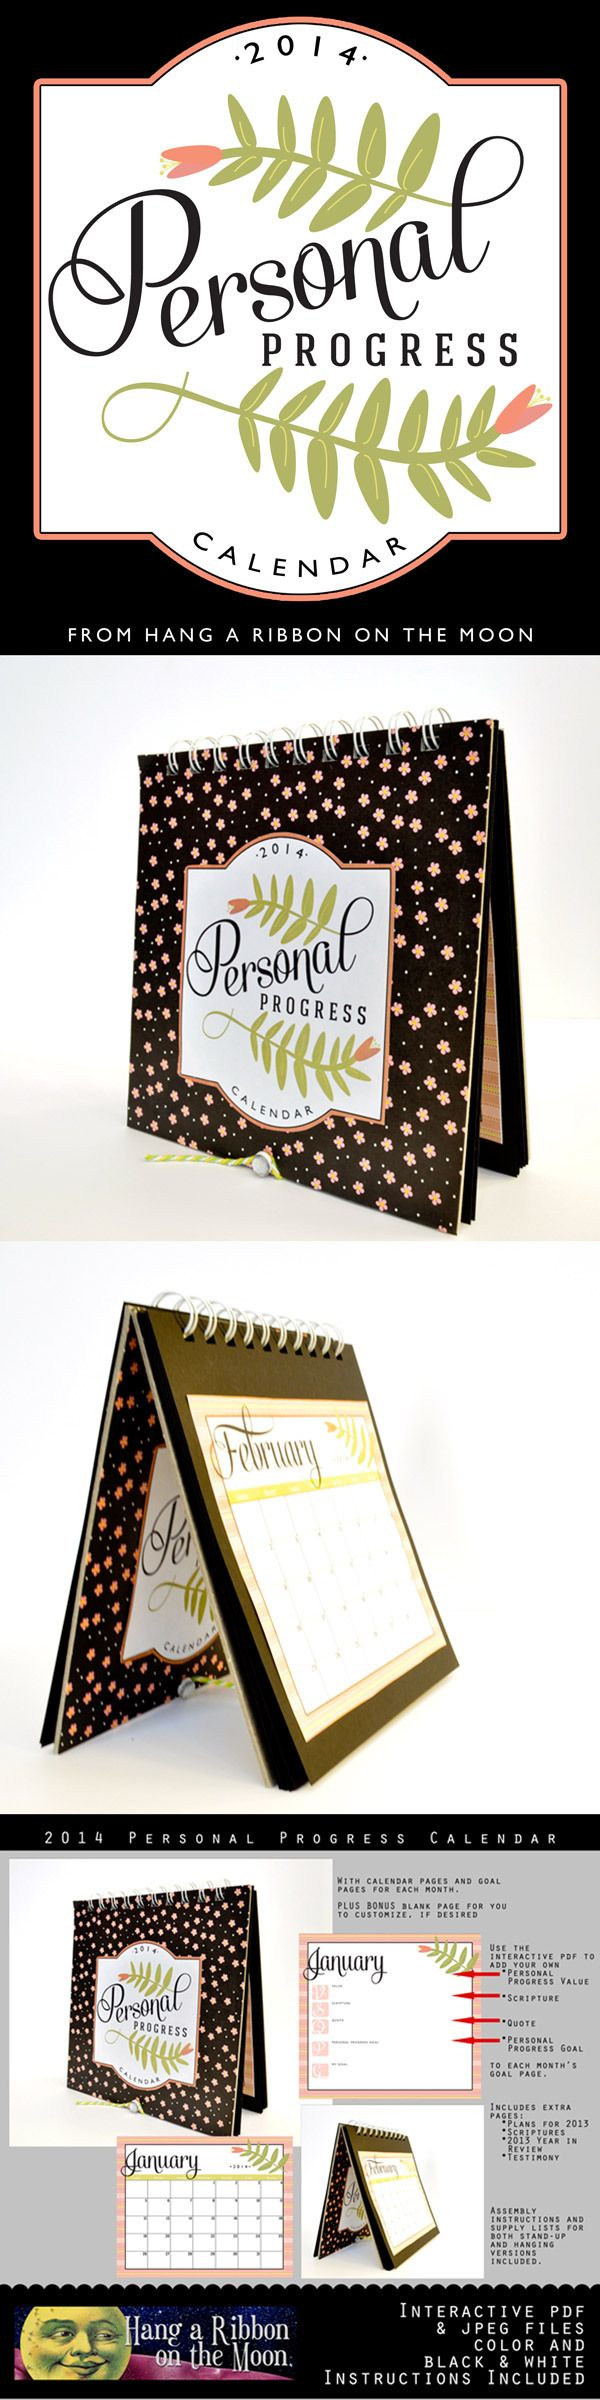 2014 Personal Progress Calendar. Great project for YW! FREE download from Hang a Ribbon on the Moon.- go to the end of the post- click on the word here in blue below the image!- zip file will auto download  & save the  zip file folder.